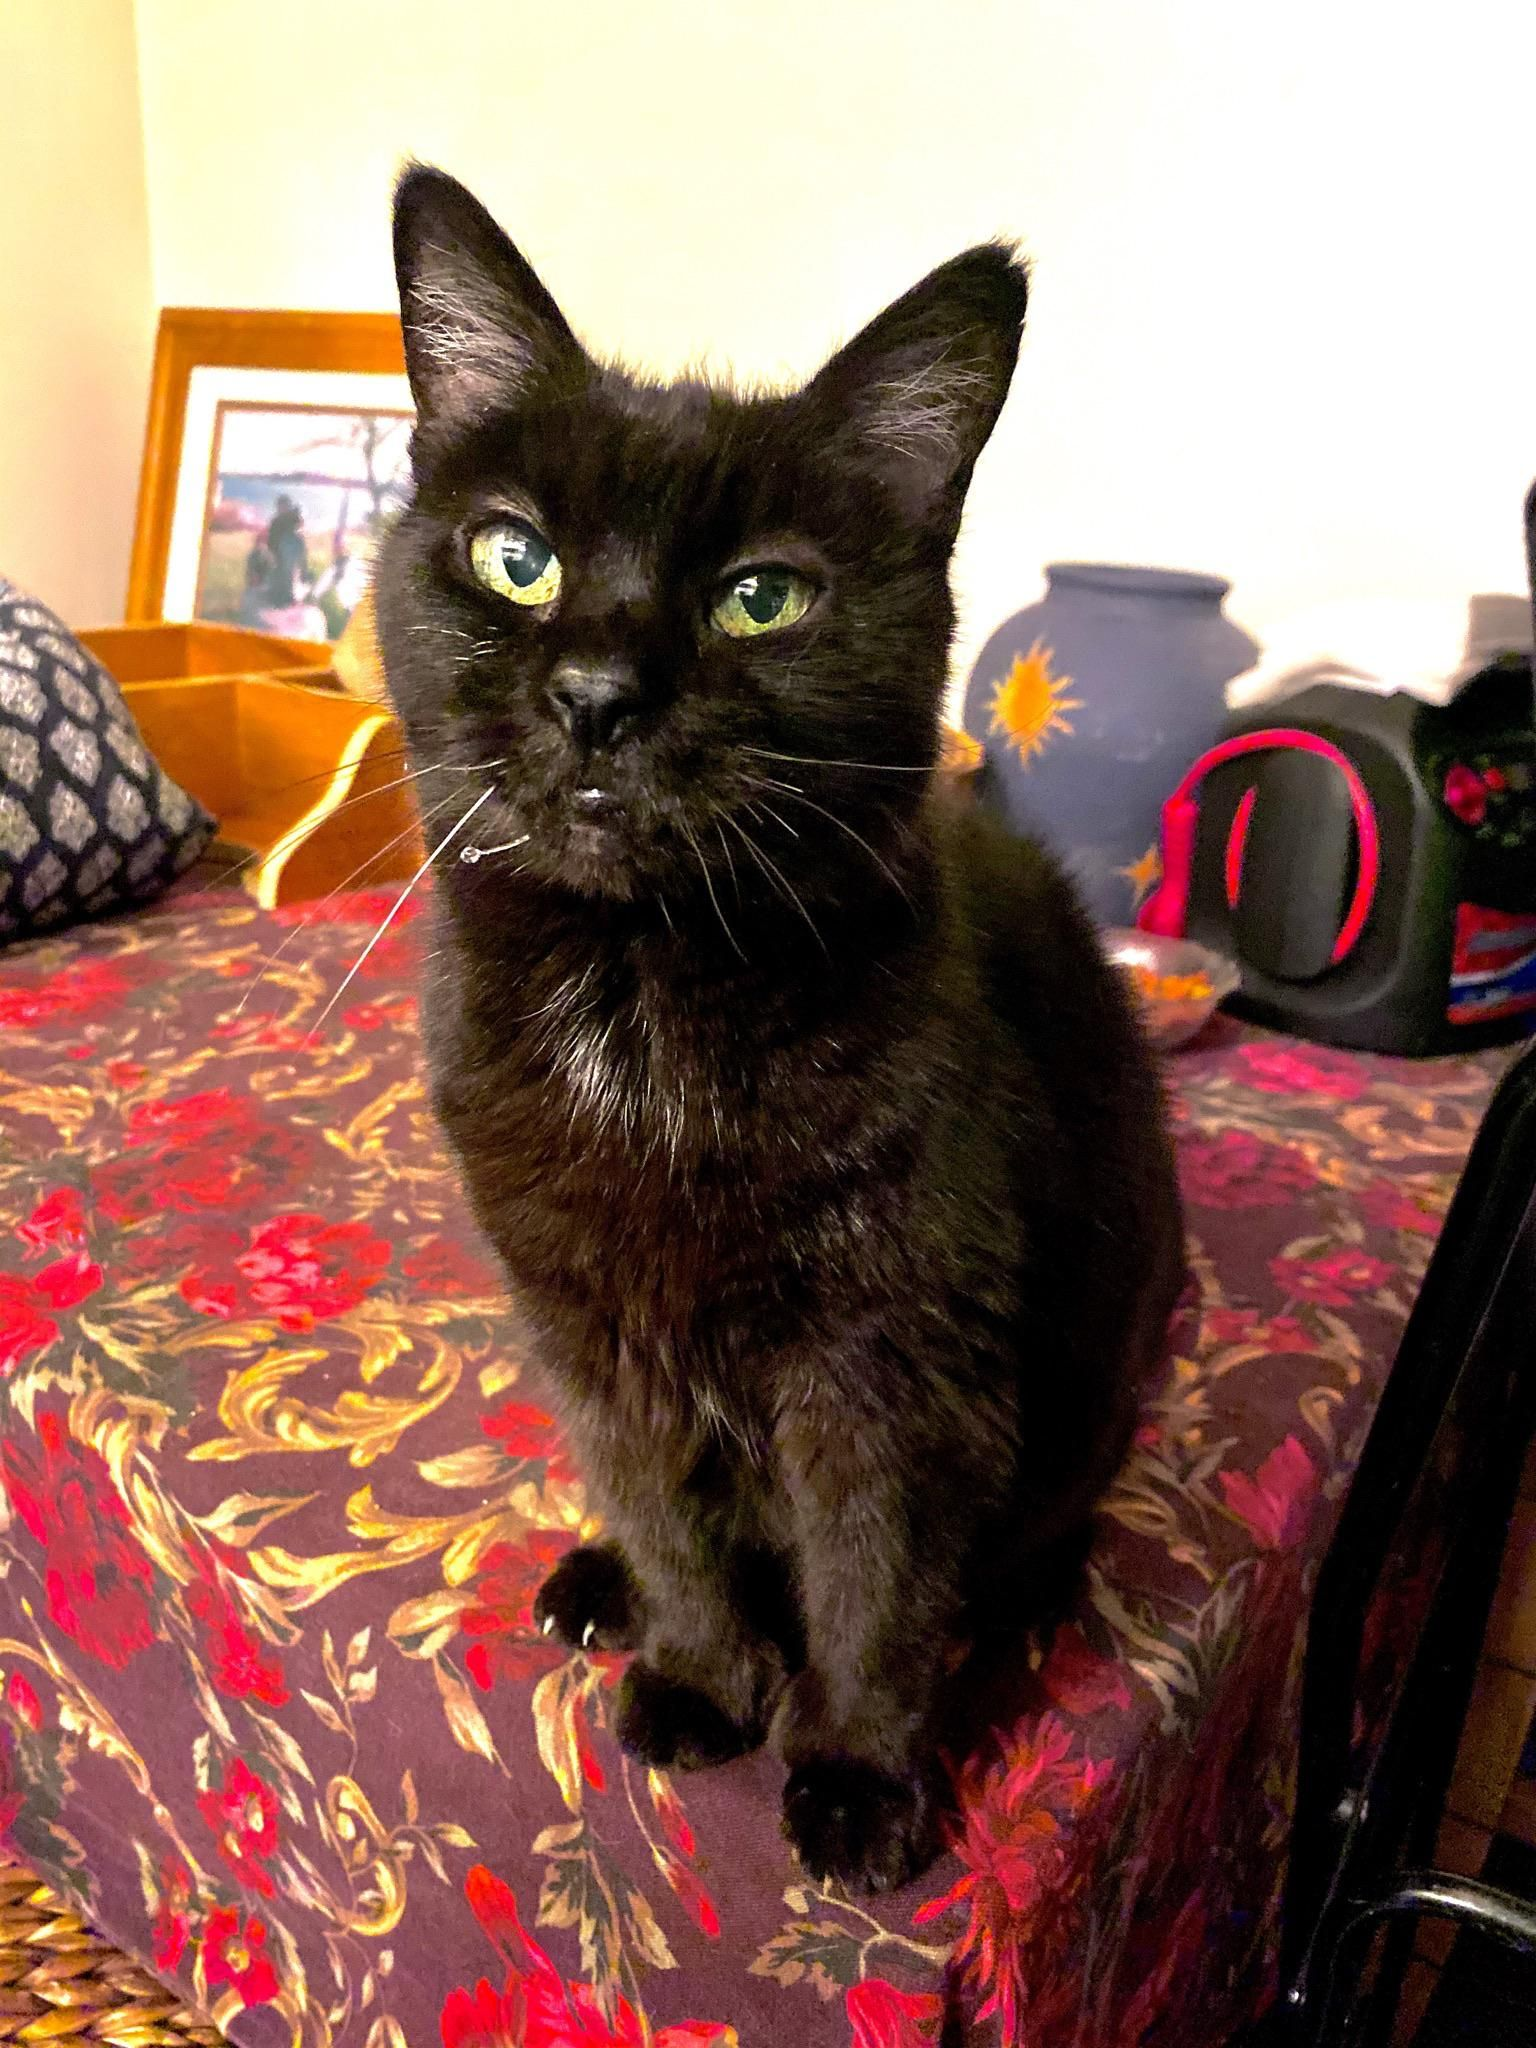 Mouse Is 19 She Purrs The Instant You Touch Her She S A Very Happy House Panther In 2020 Purring Happy House Touching Herself